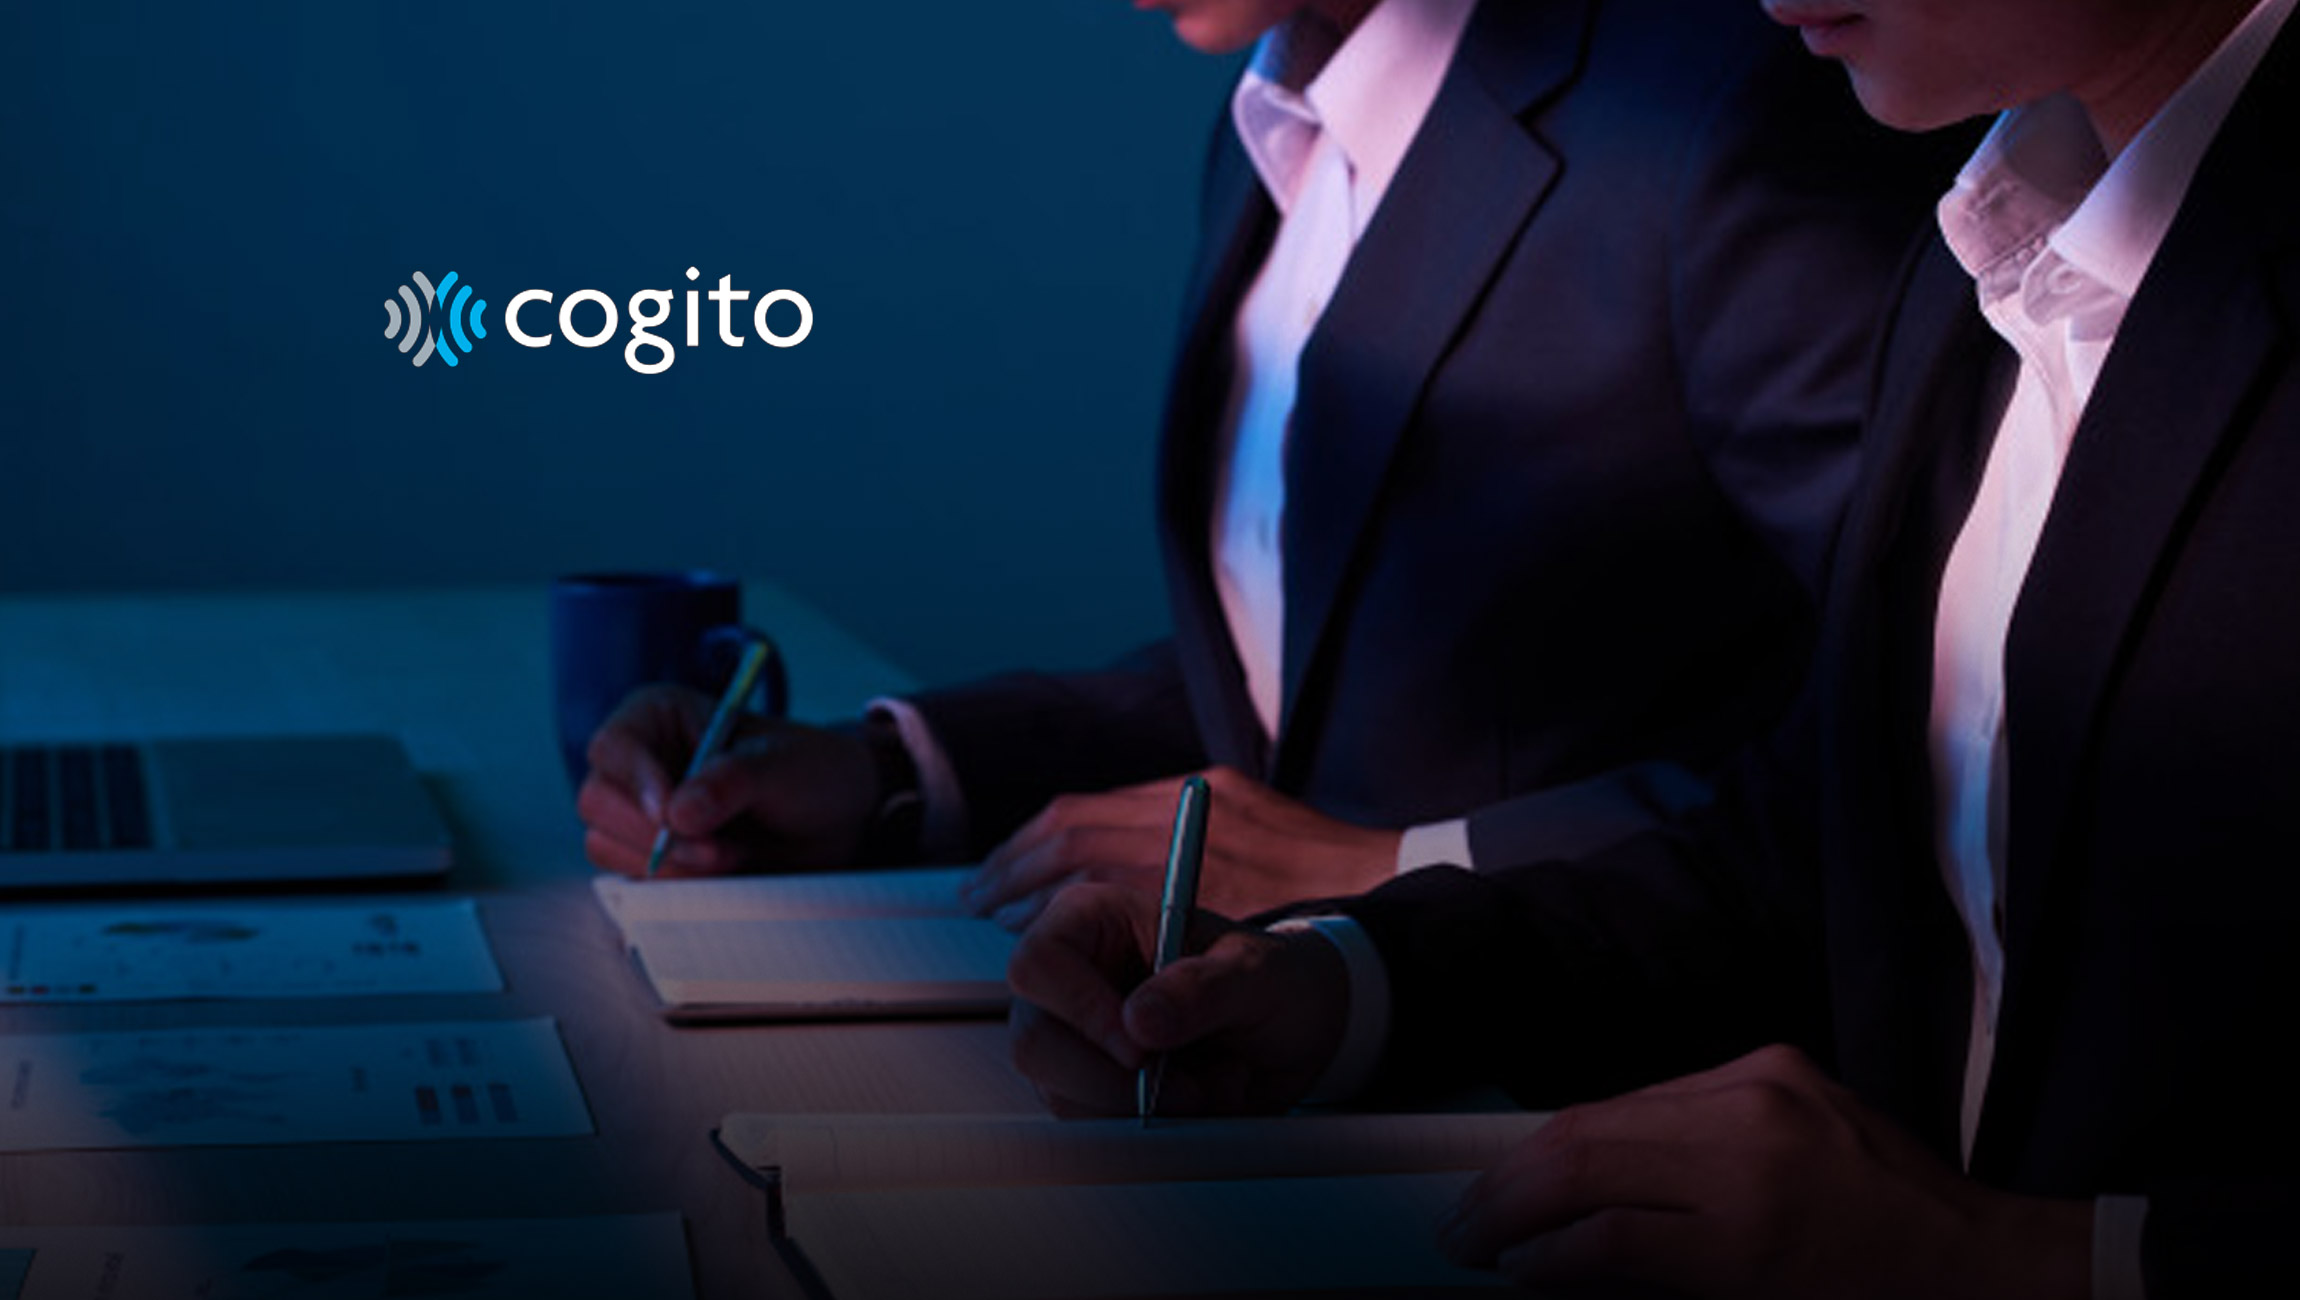 Cogito's AI Coaching System Integrates with Amazon Connect to Help Organizations Immediately Benefit from Human Augmentation